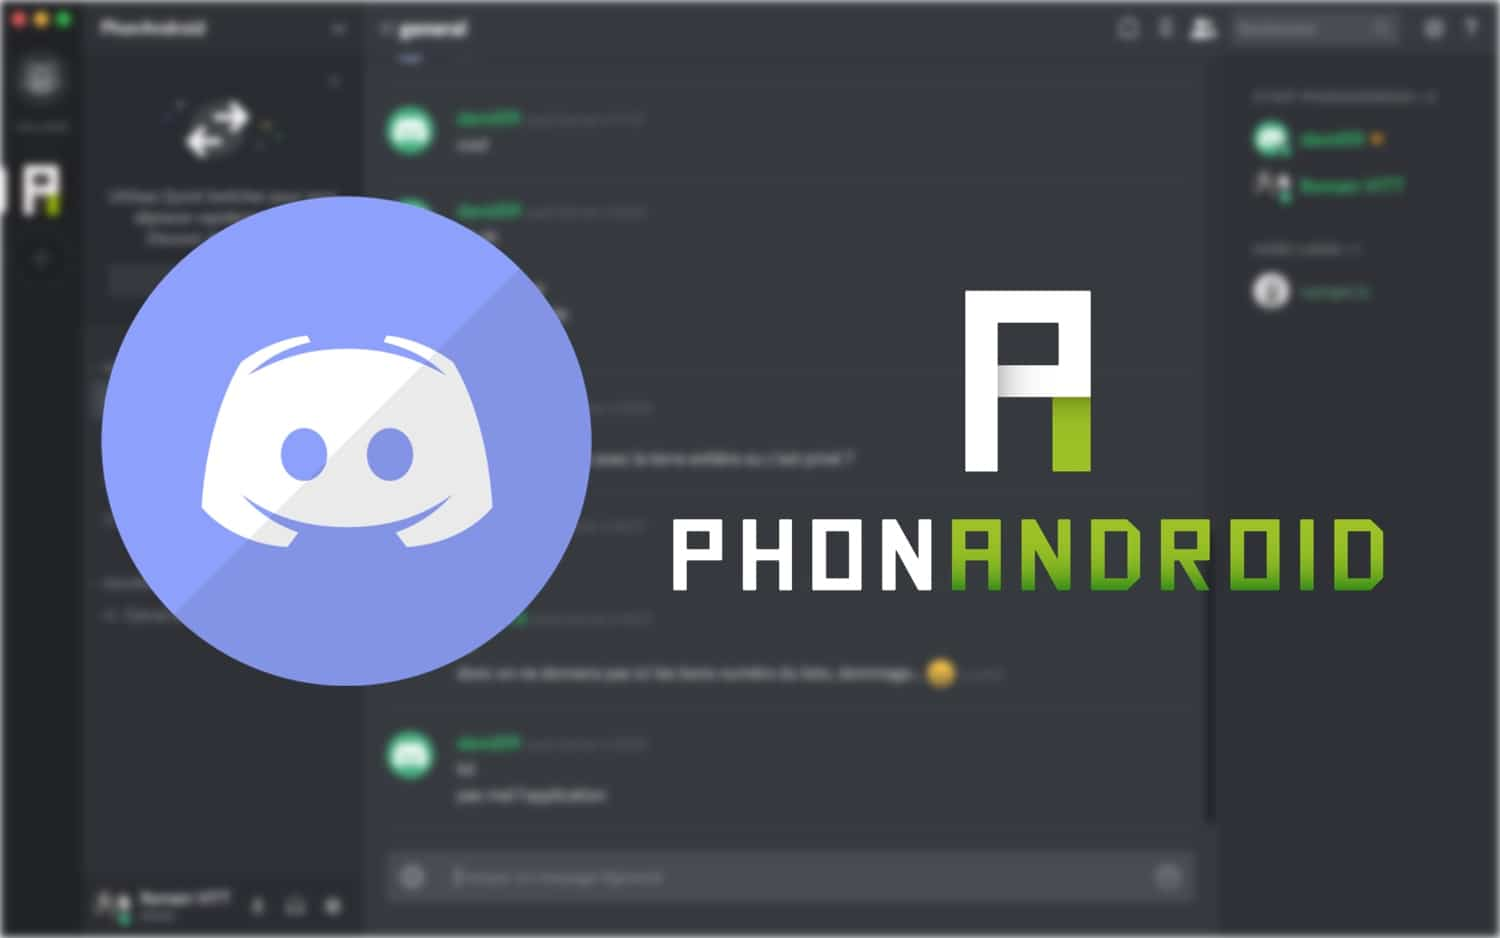 phonandroid discord